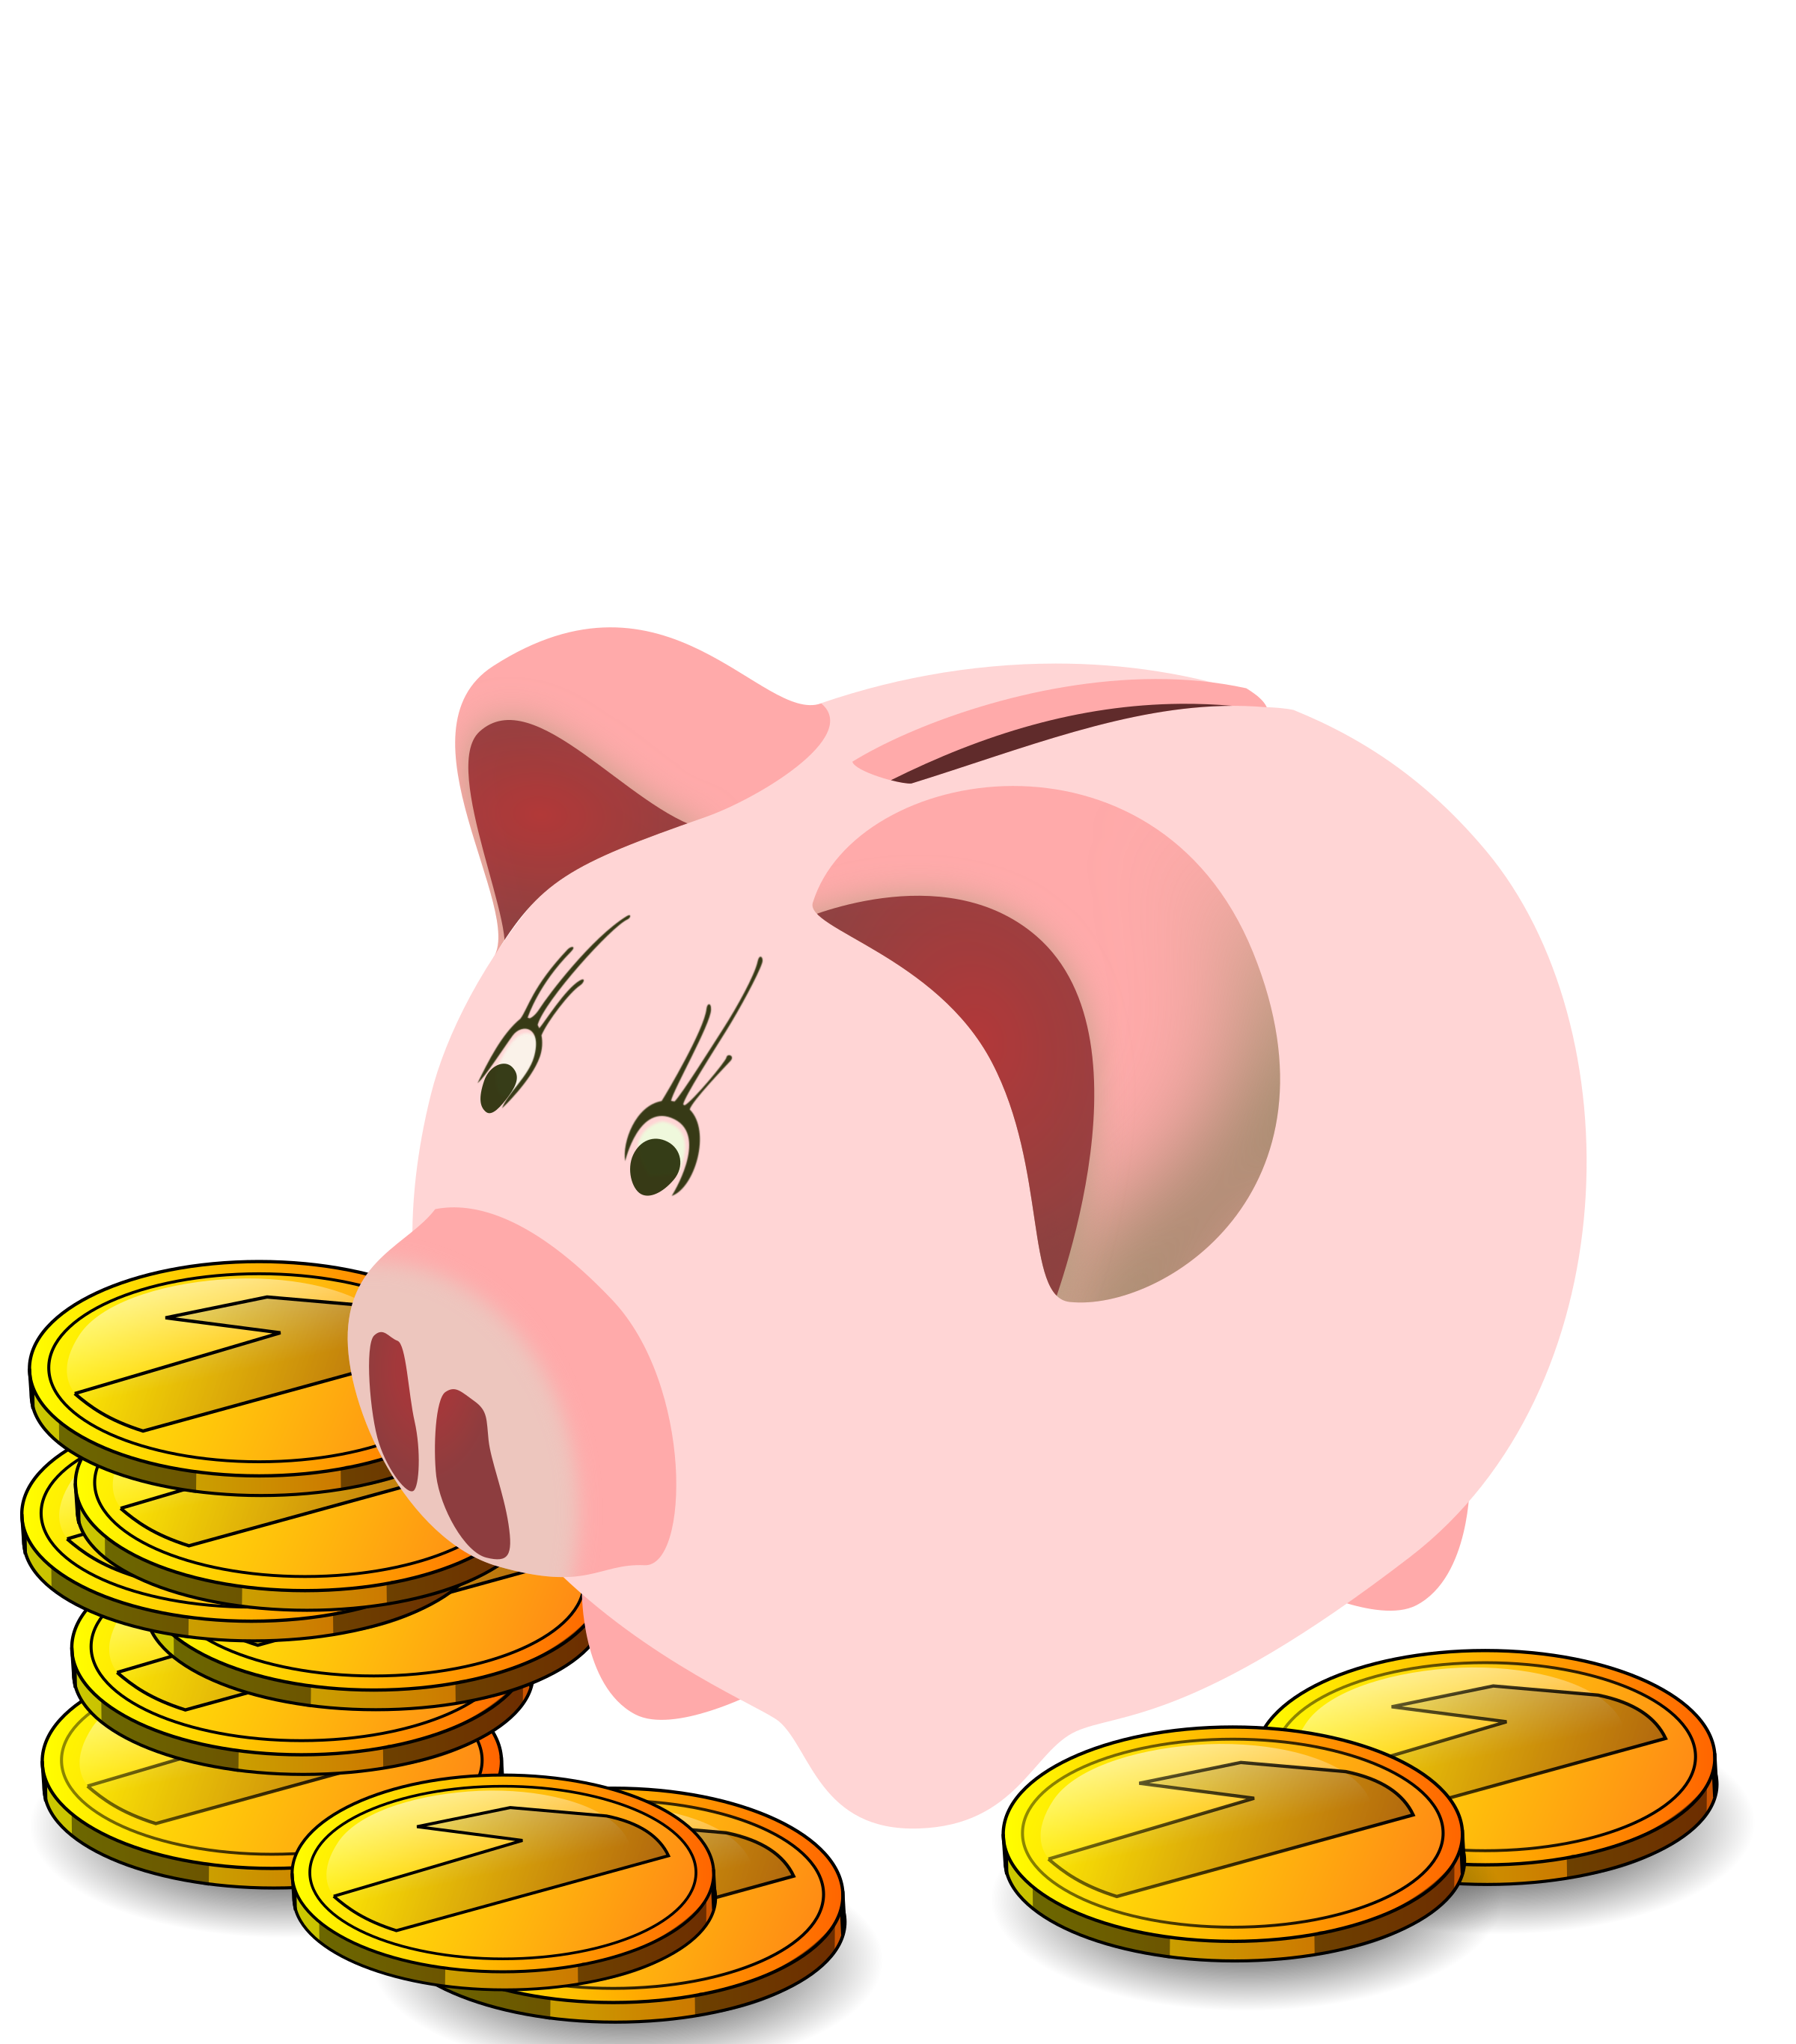 Clipart piggy bank graphic royalty free download Clipart - Piggy Bank graphic royalty free download